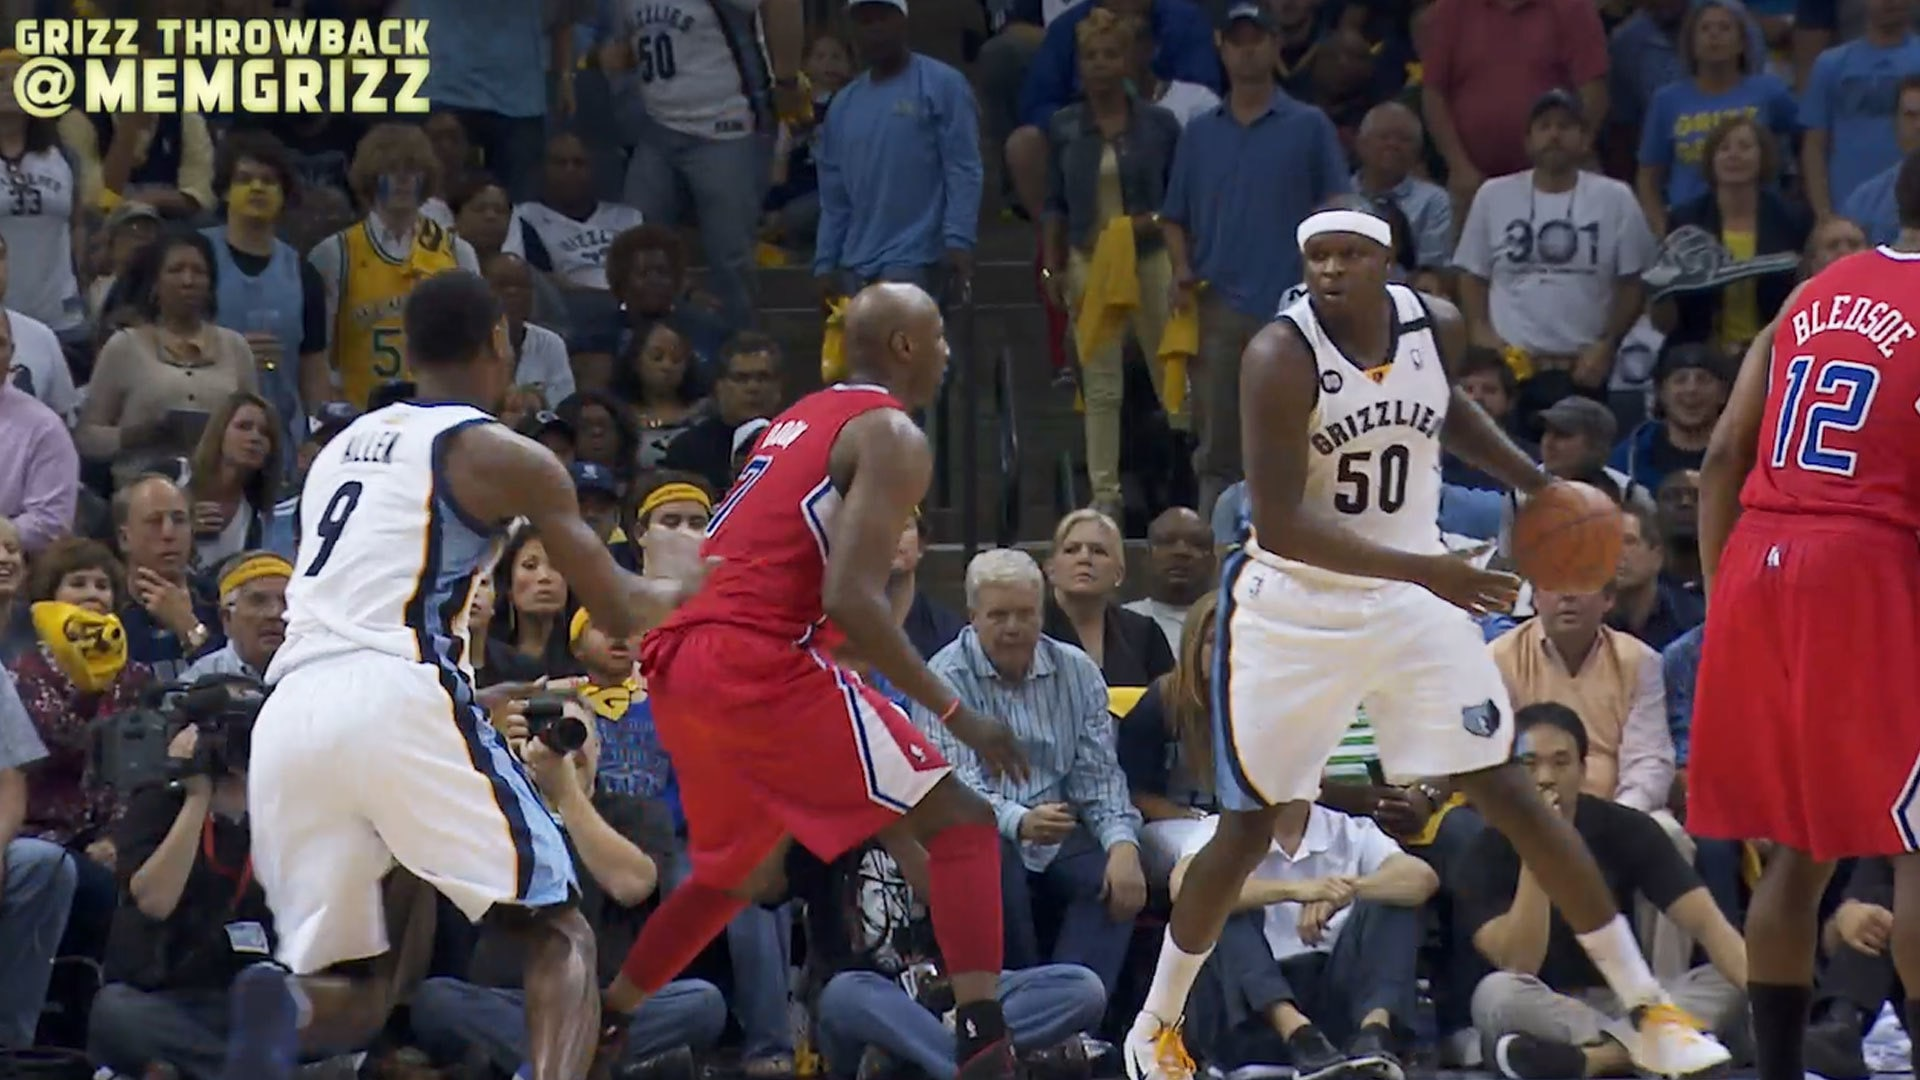 2013 Playoffs: Grizzlies vs Clippers | Throwback Thursday